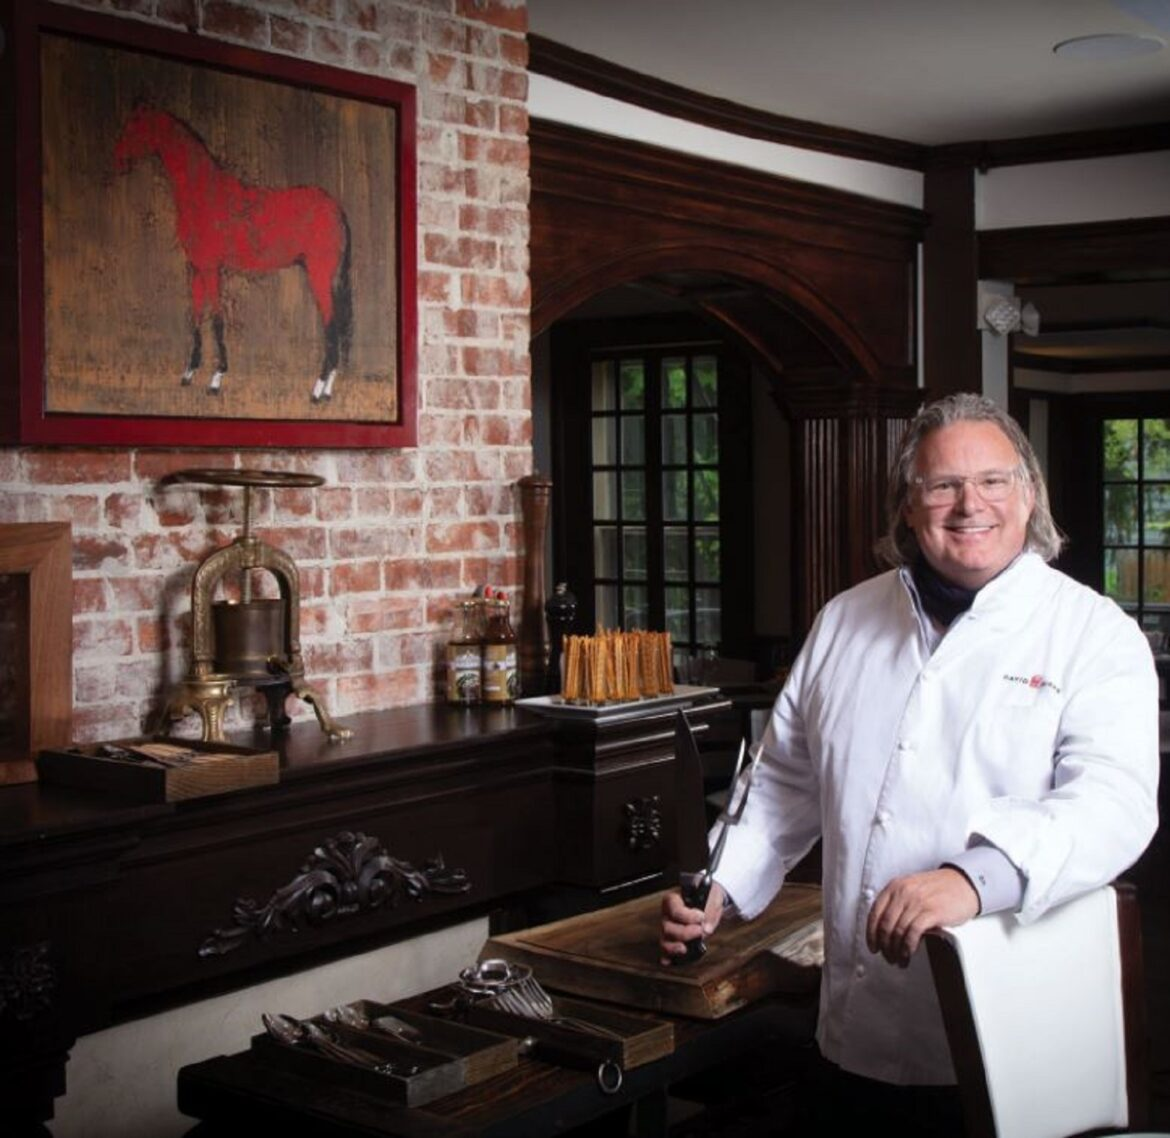 Why celeb chef David Burke hired his landscaper, housekeeper for kitchen gigs